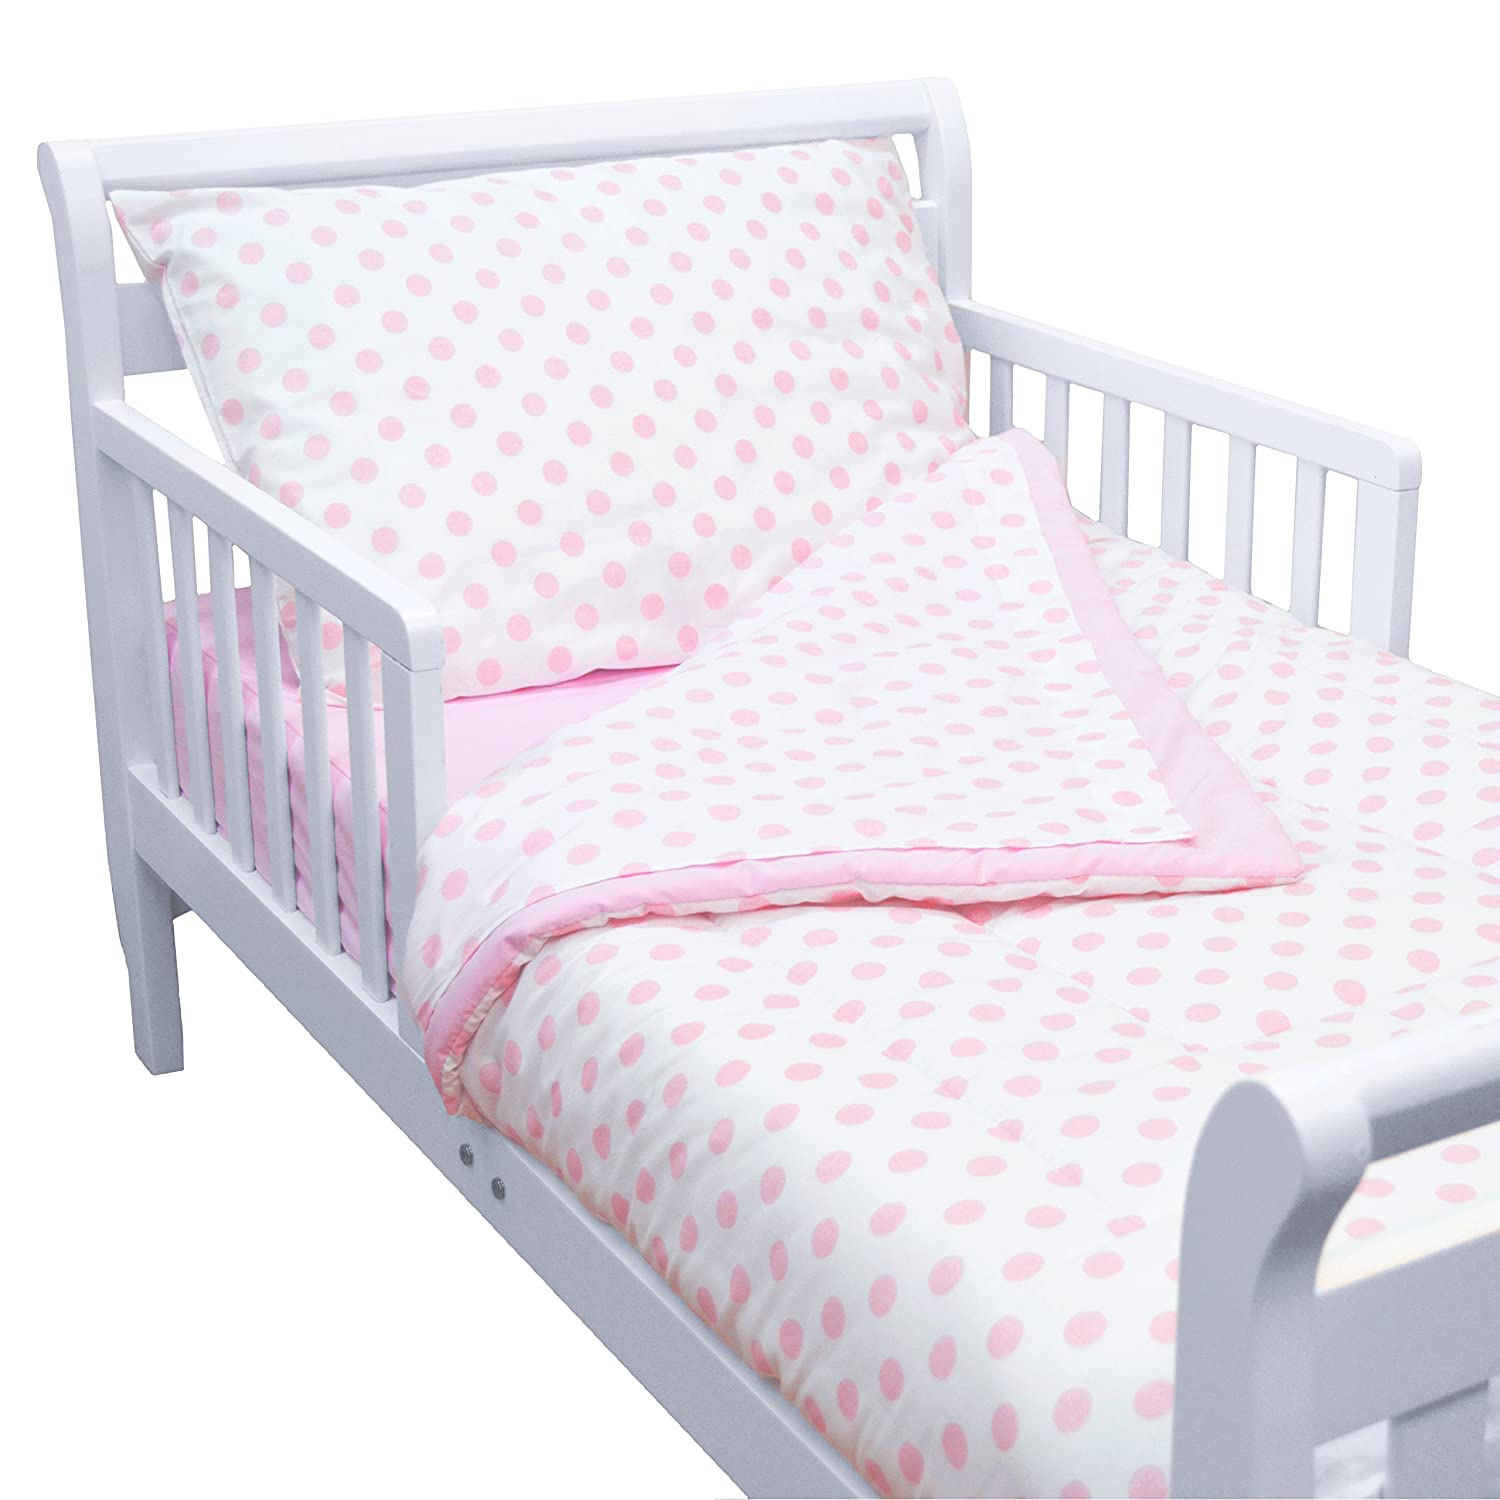 TL Care 100% Cotton Percale Toddler Bed Set, Pink, for Girls